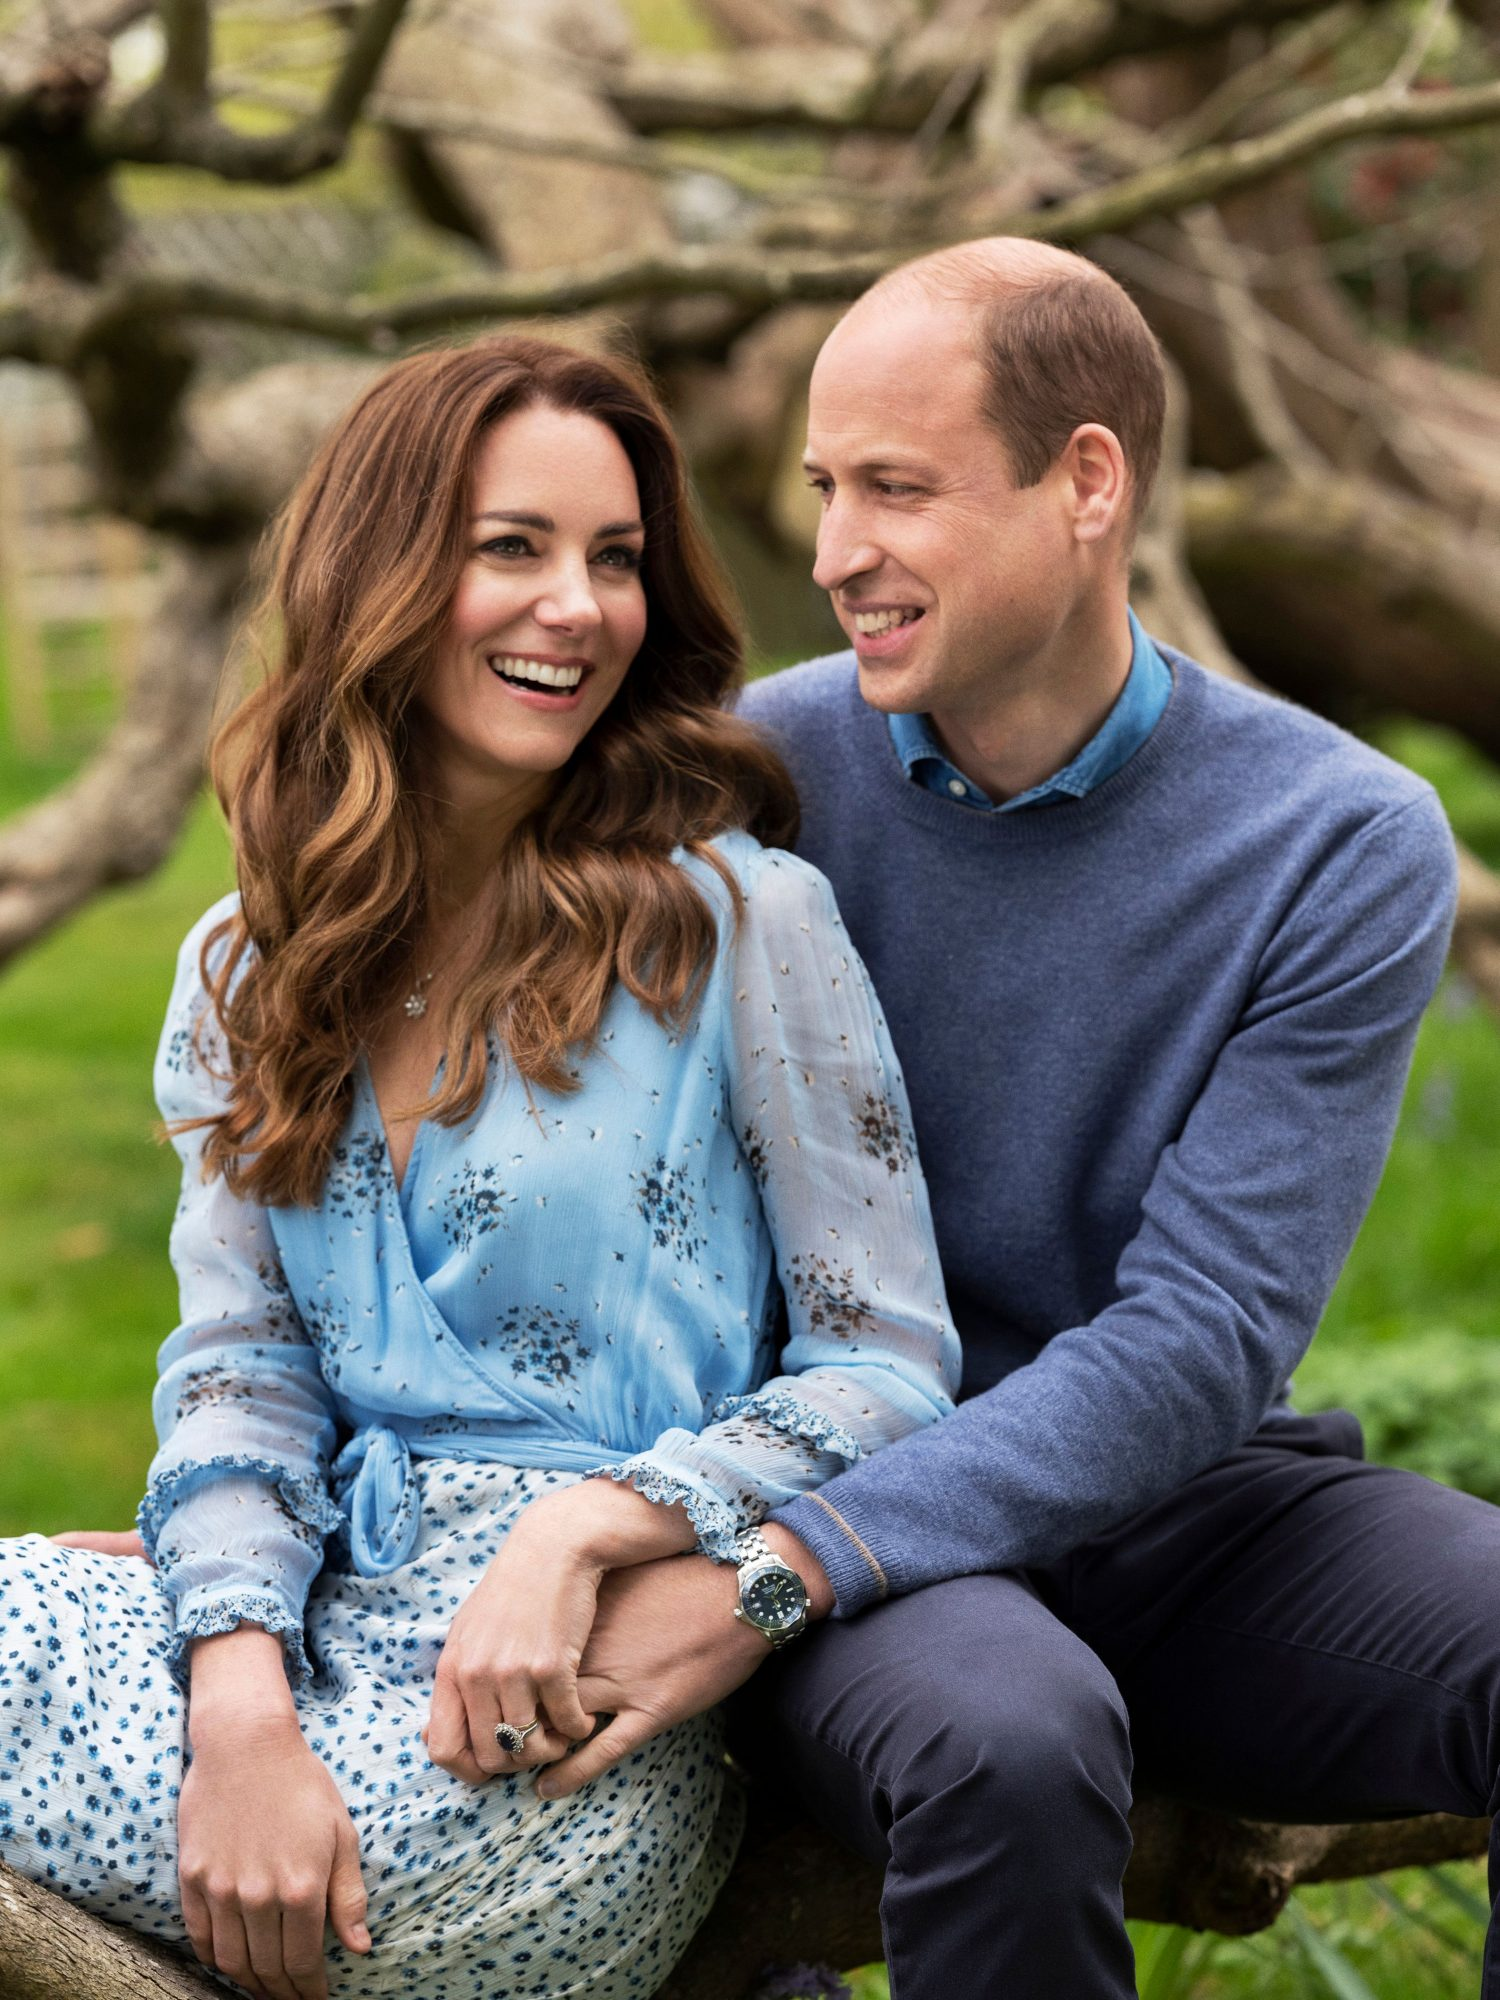 Prince William y Kate Middleton 10th Wedding Anniversary of Duke and Duchess of Cambridge, Kensington Palace, London, UK - 28 Apr 2021